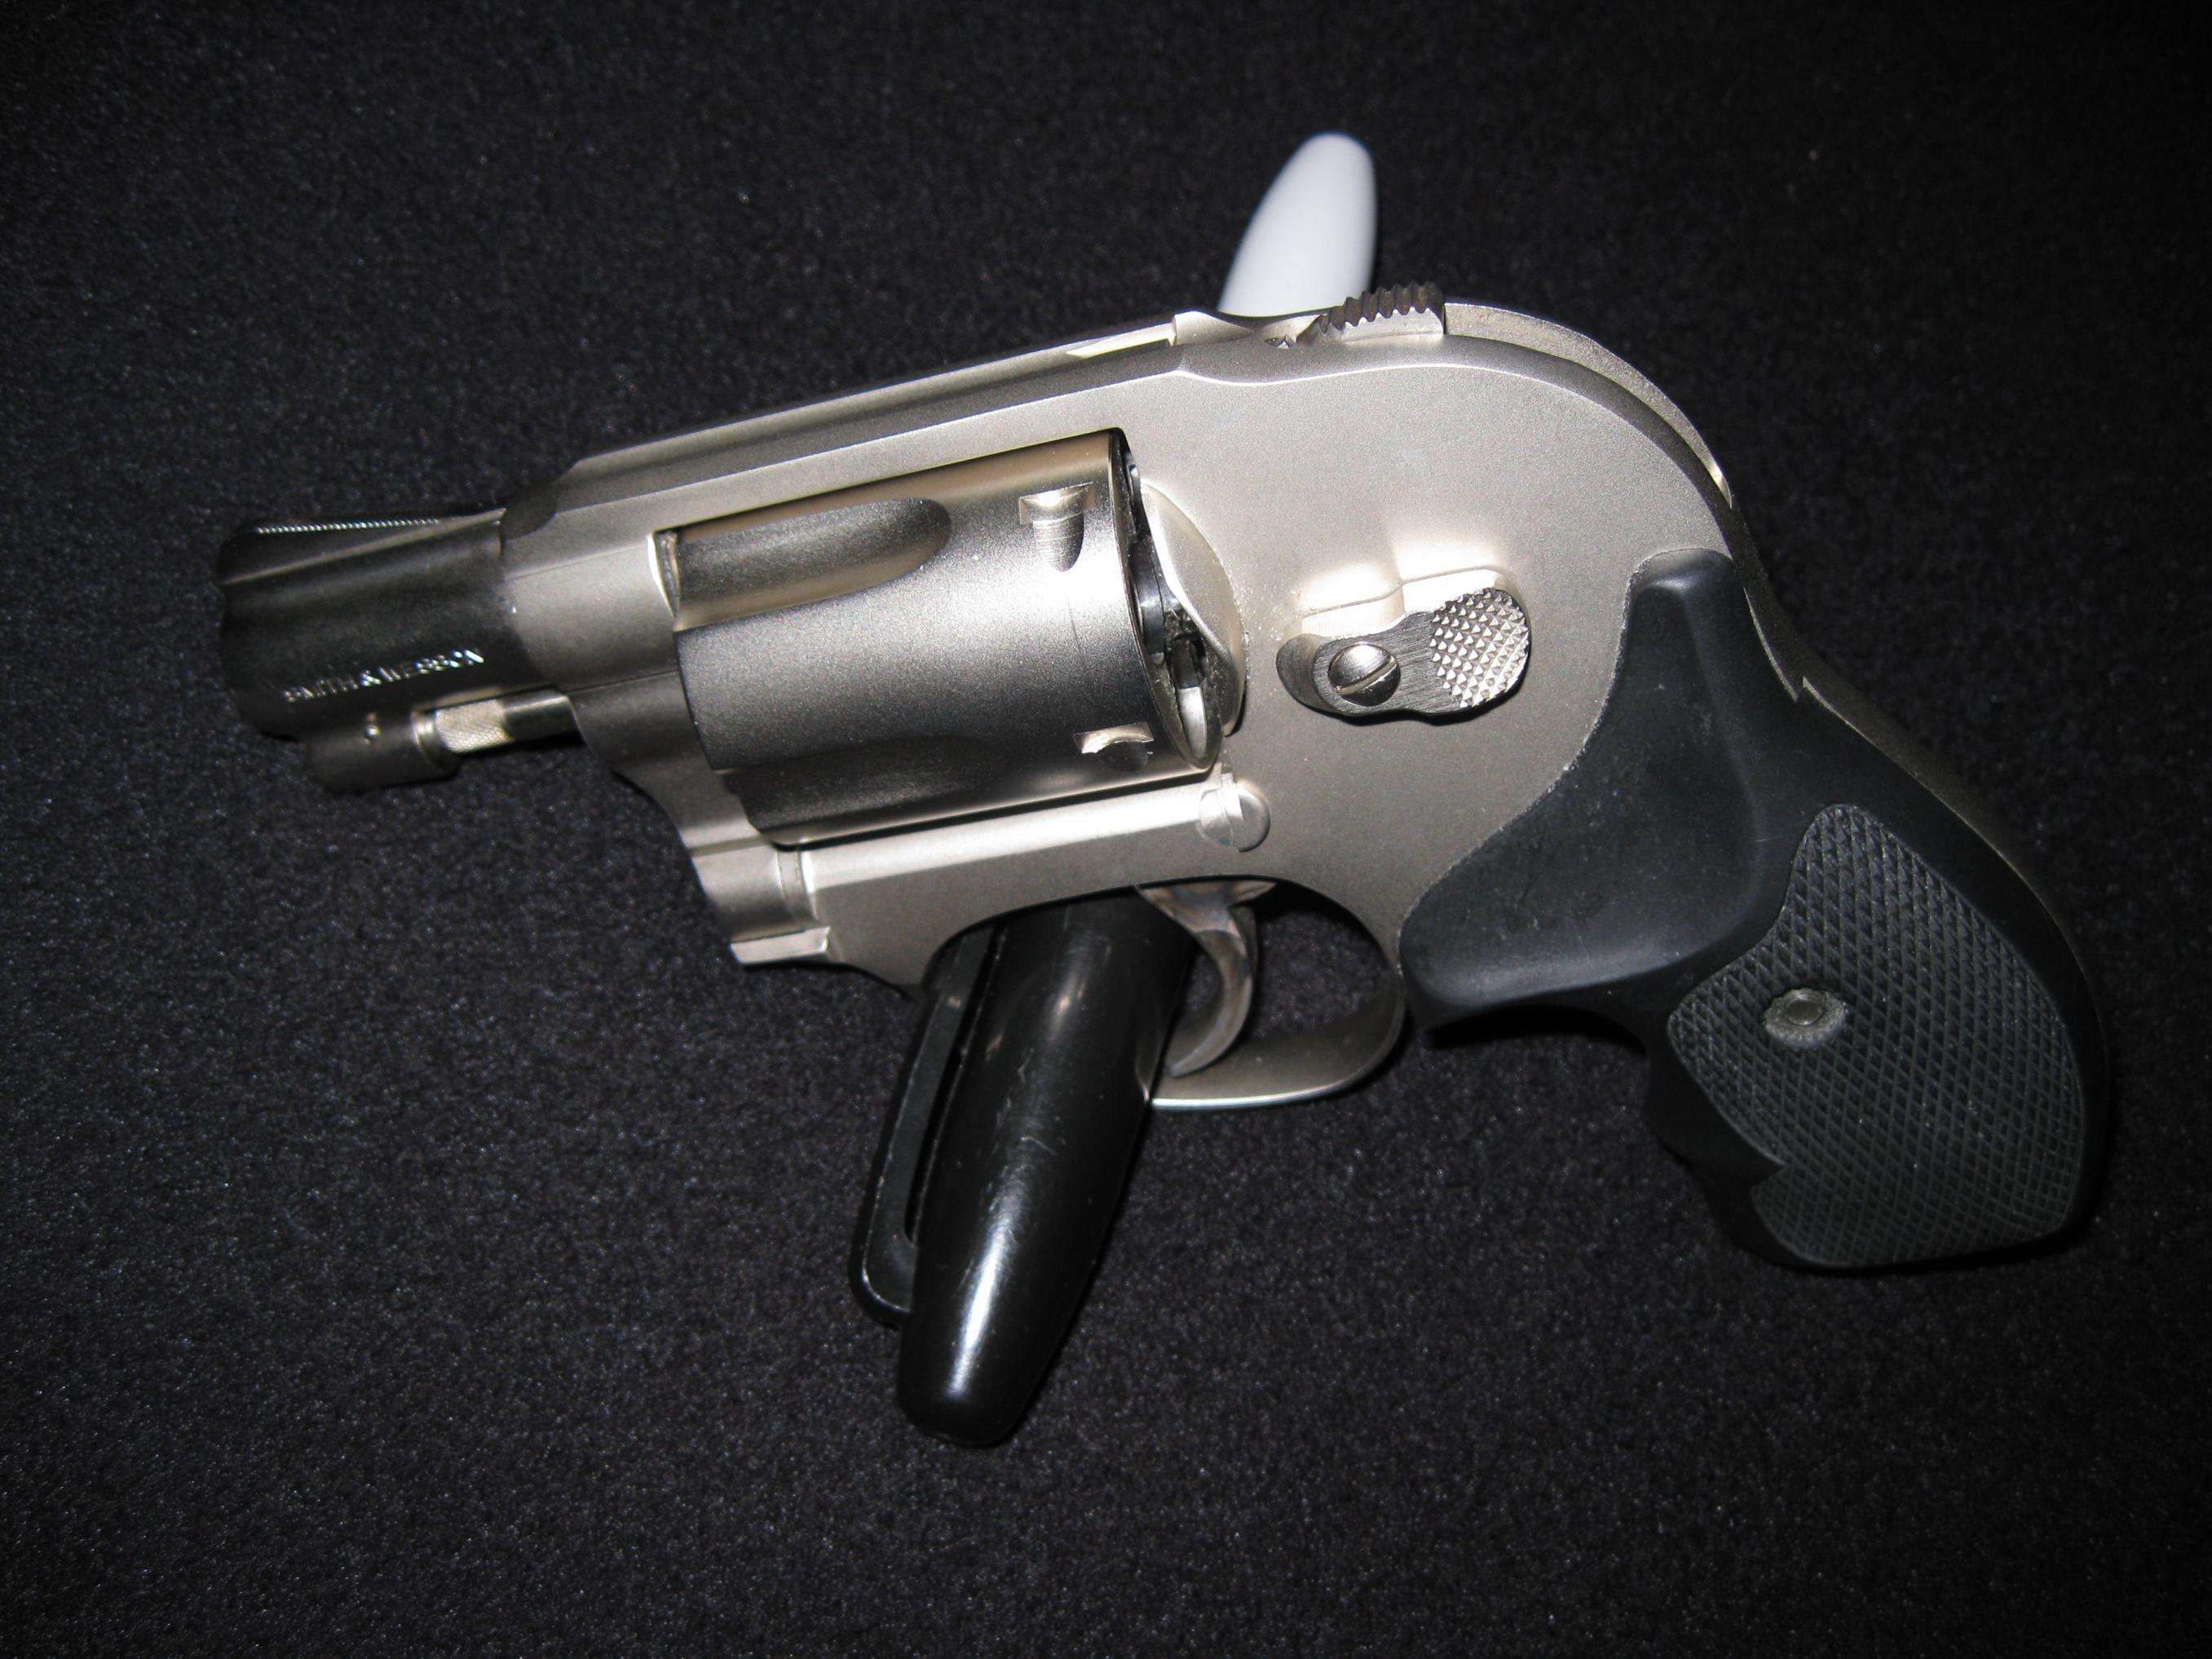 what is my S&W 638 Bodyguard worth? (pic)-img_0823.jpg